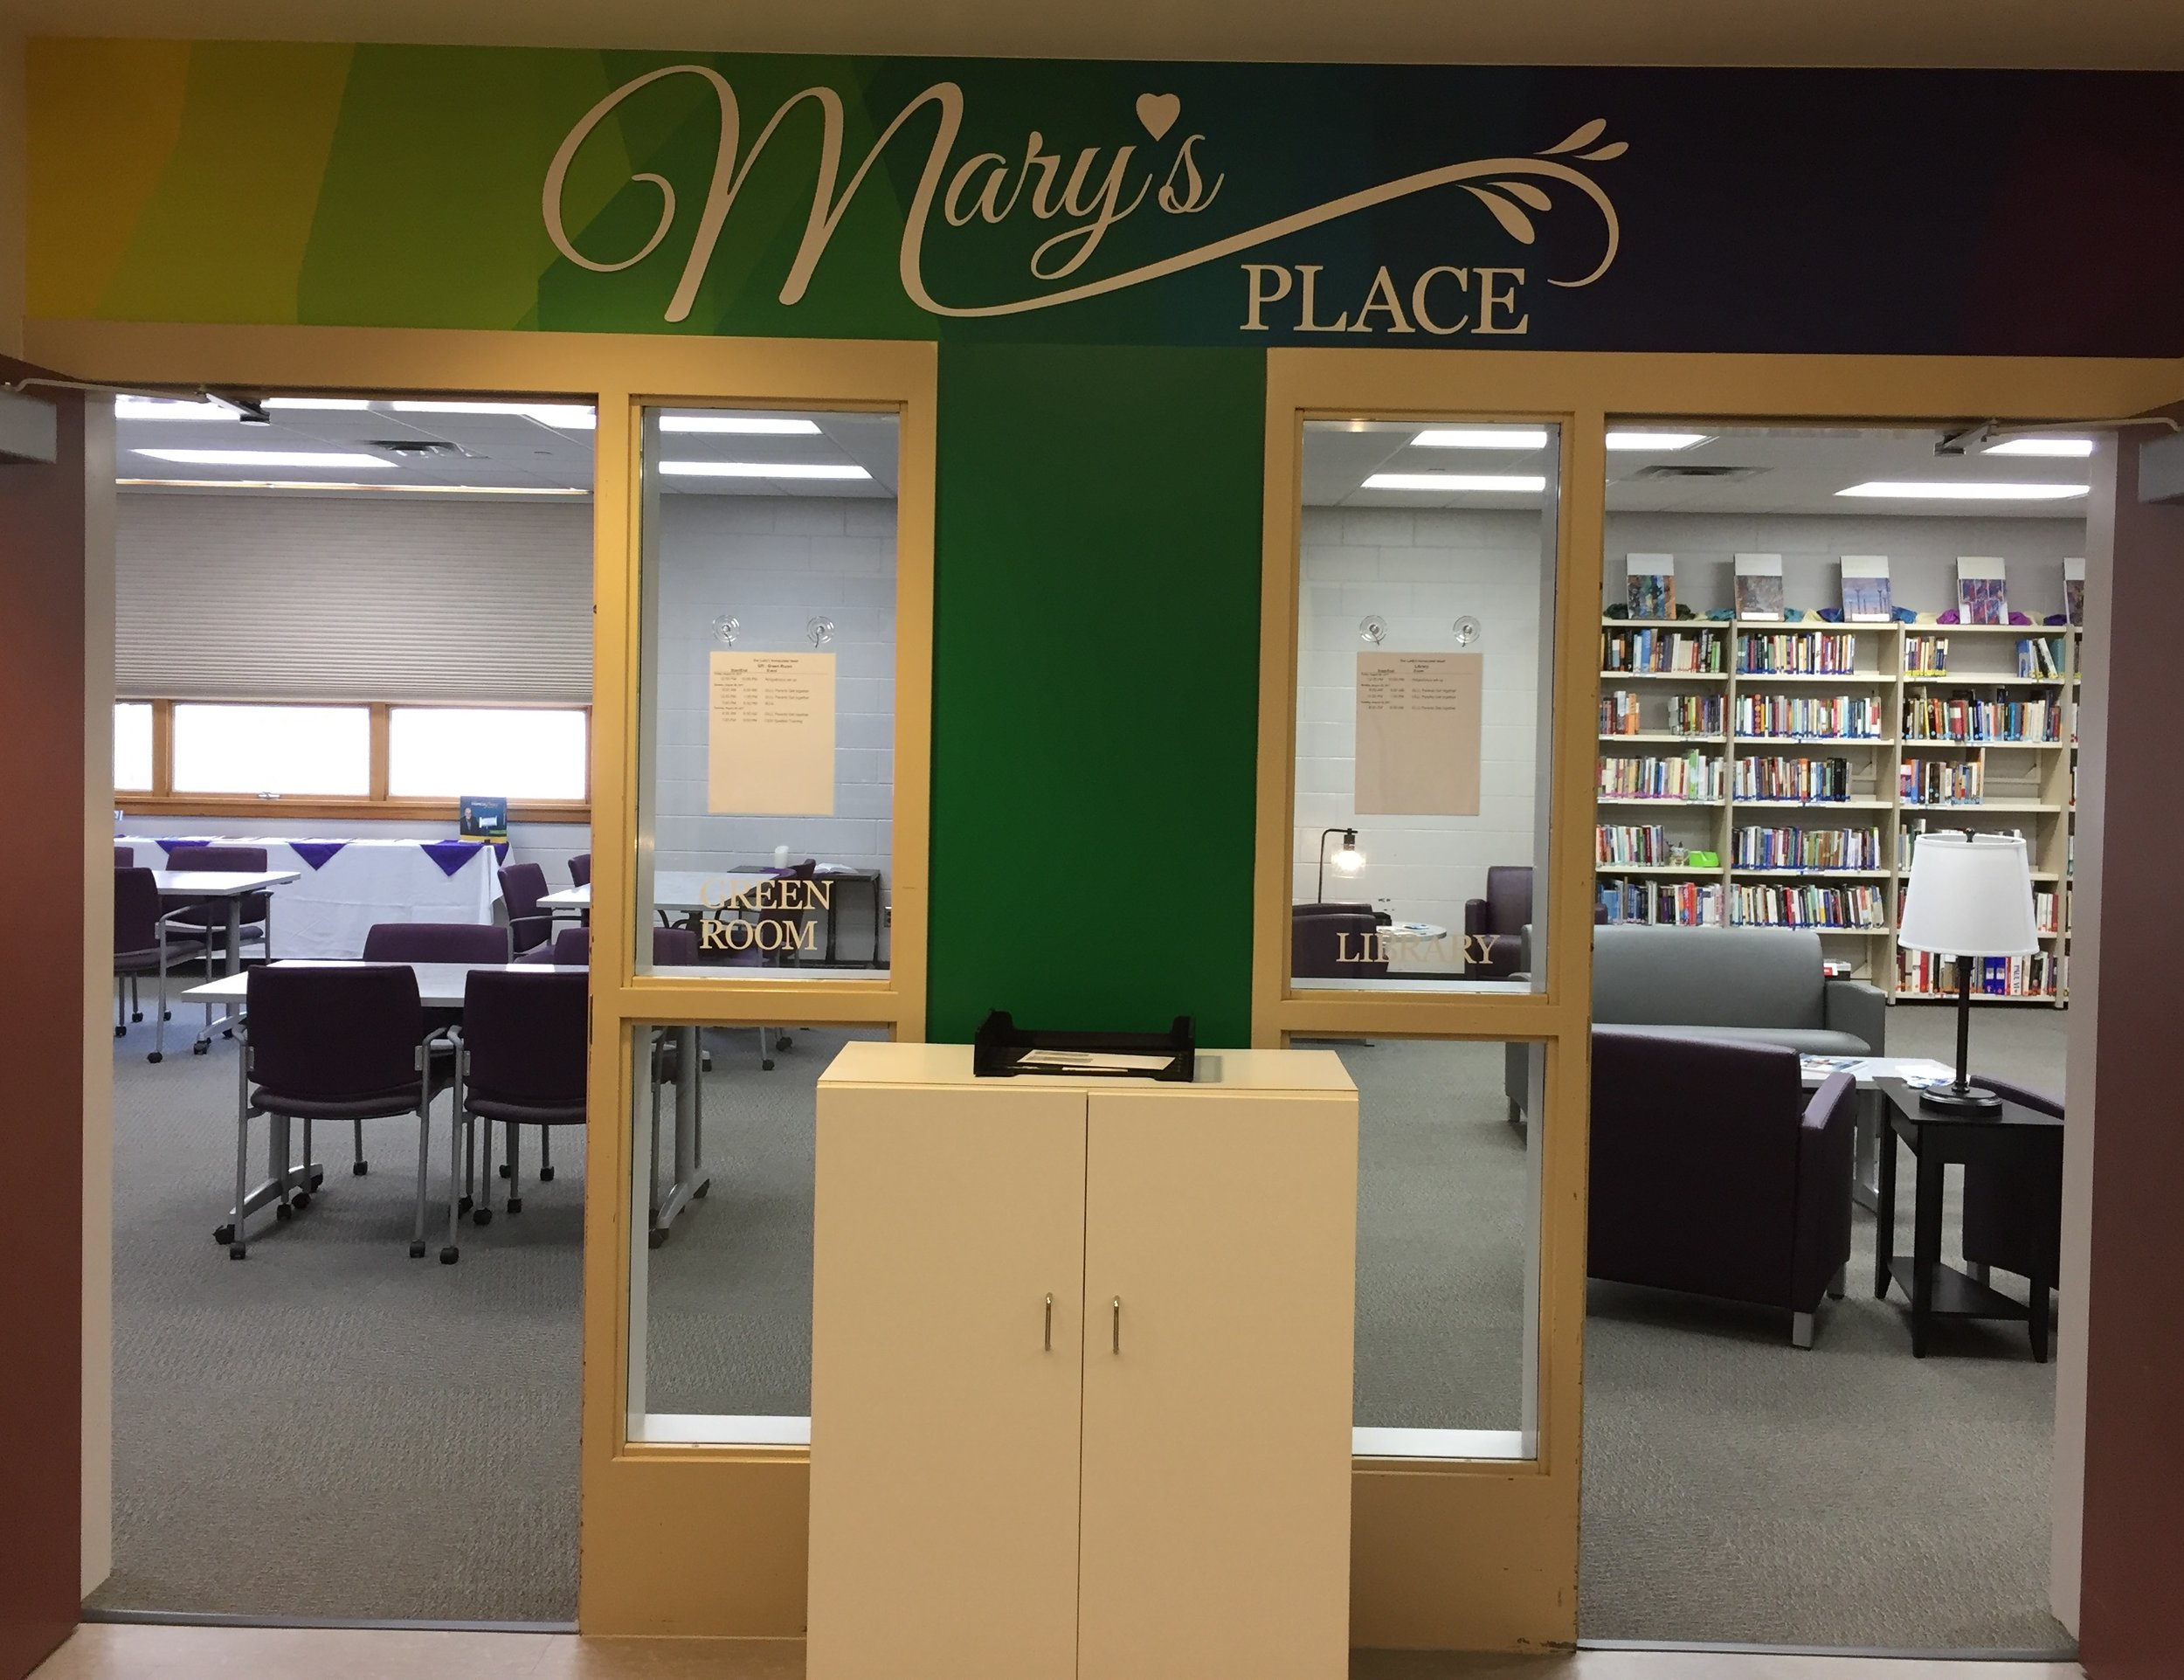 2017 Mary's Place.jpg